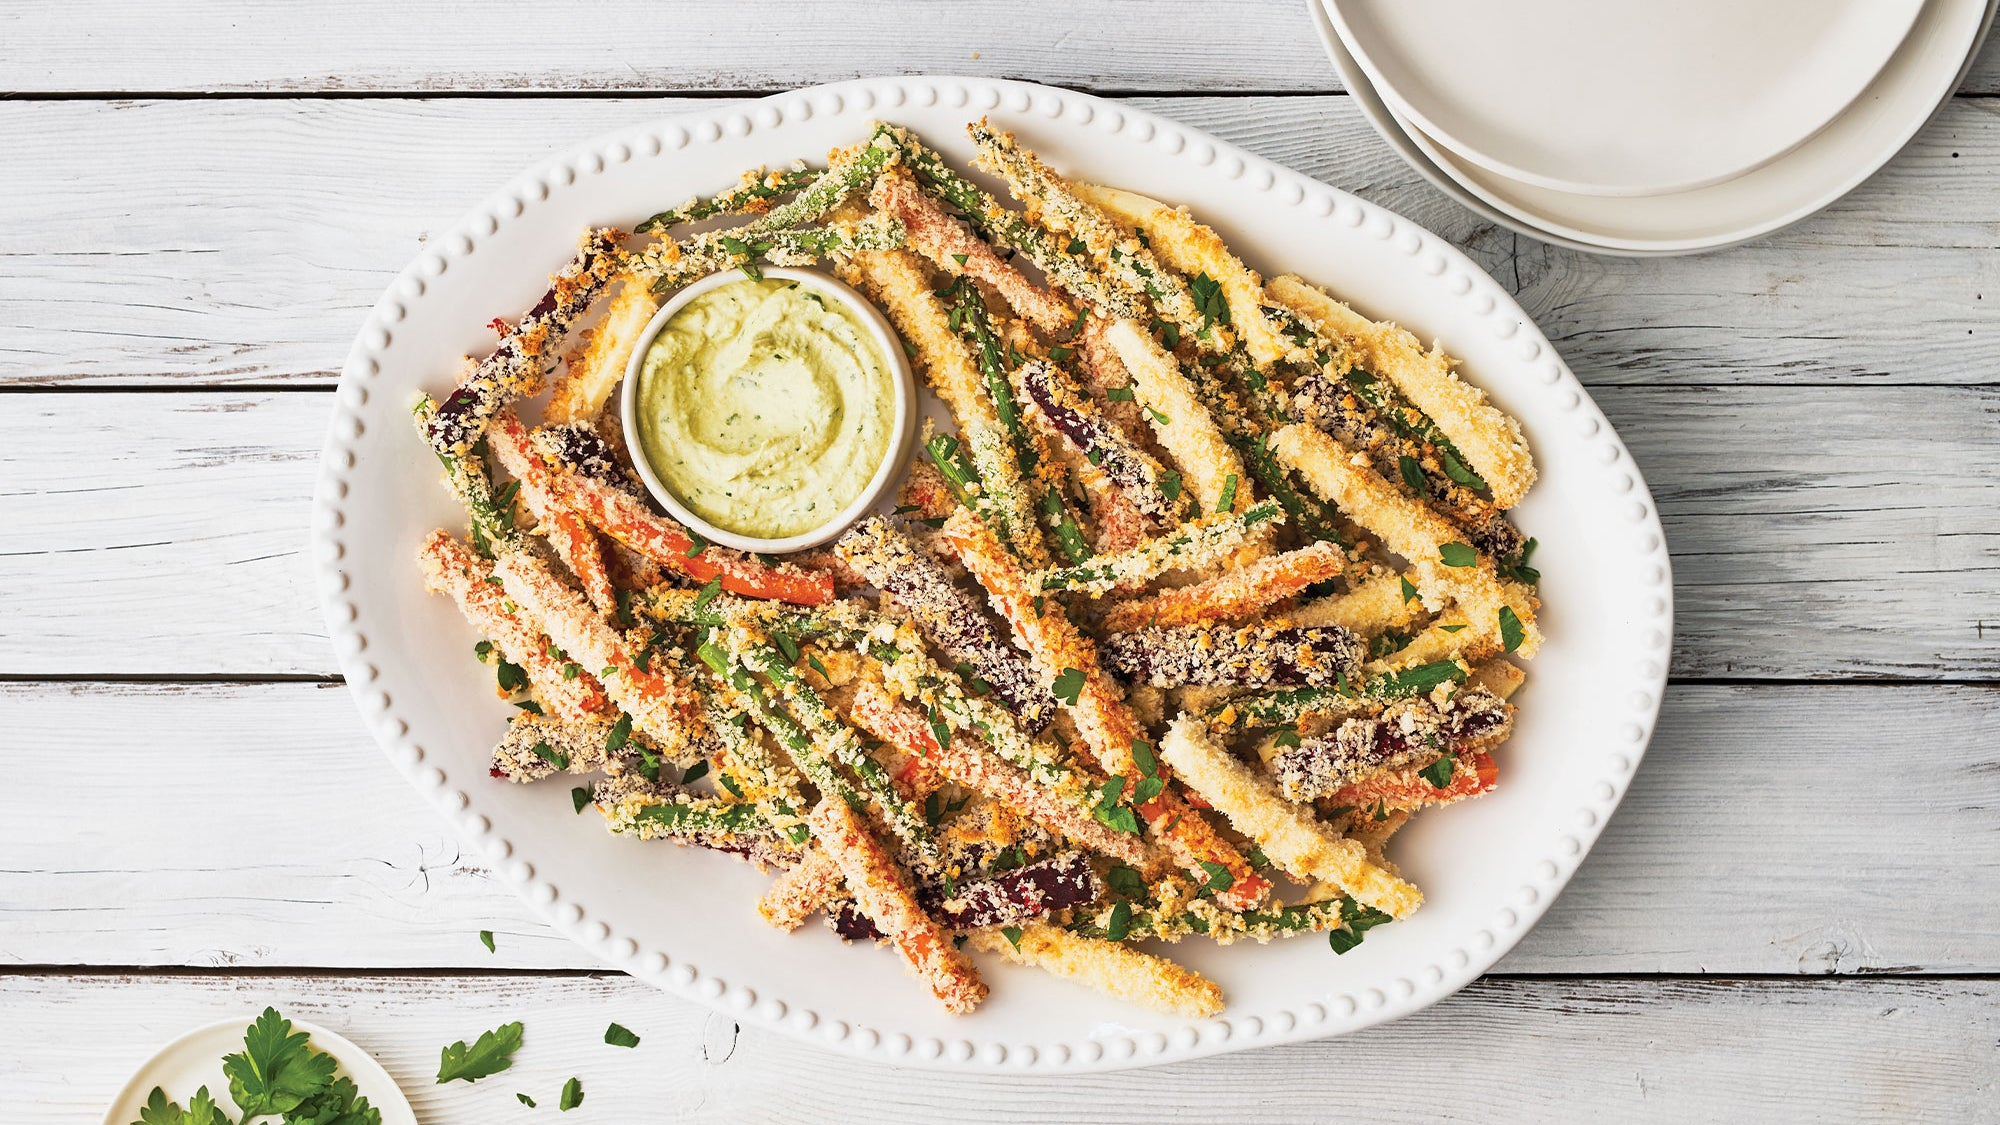 Roasted Vegetable Fries with Cashew Herb Dip recipe